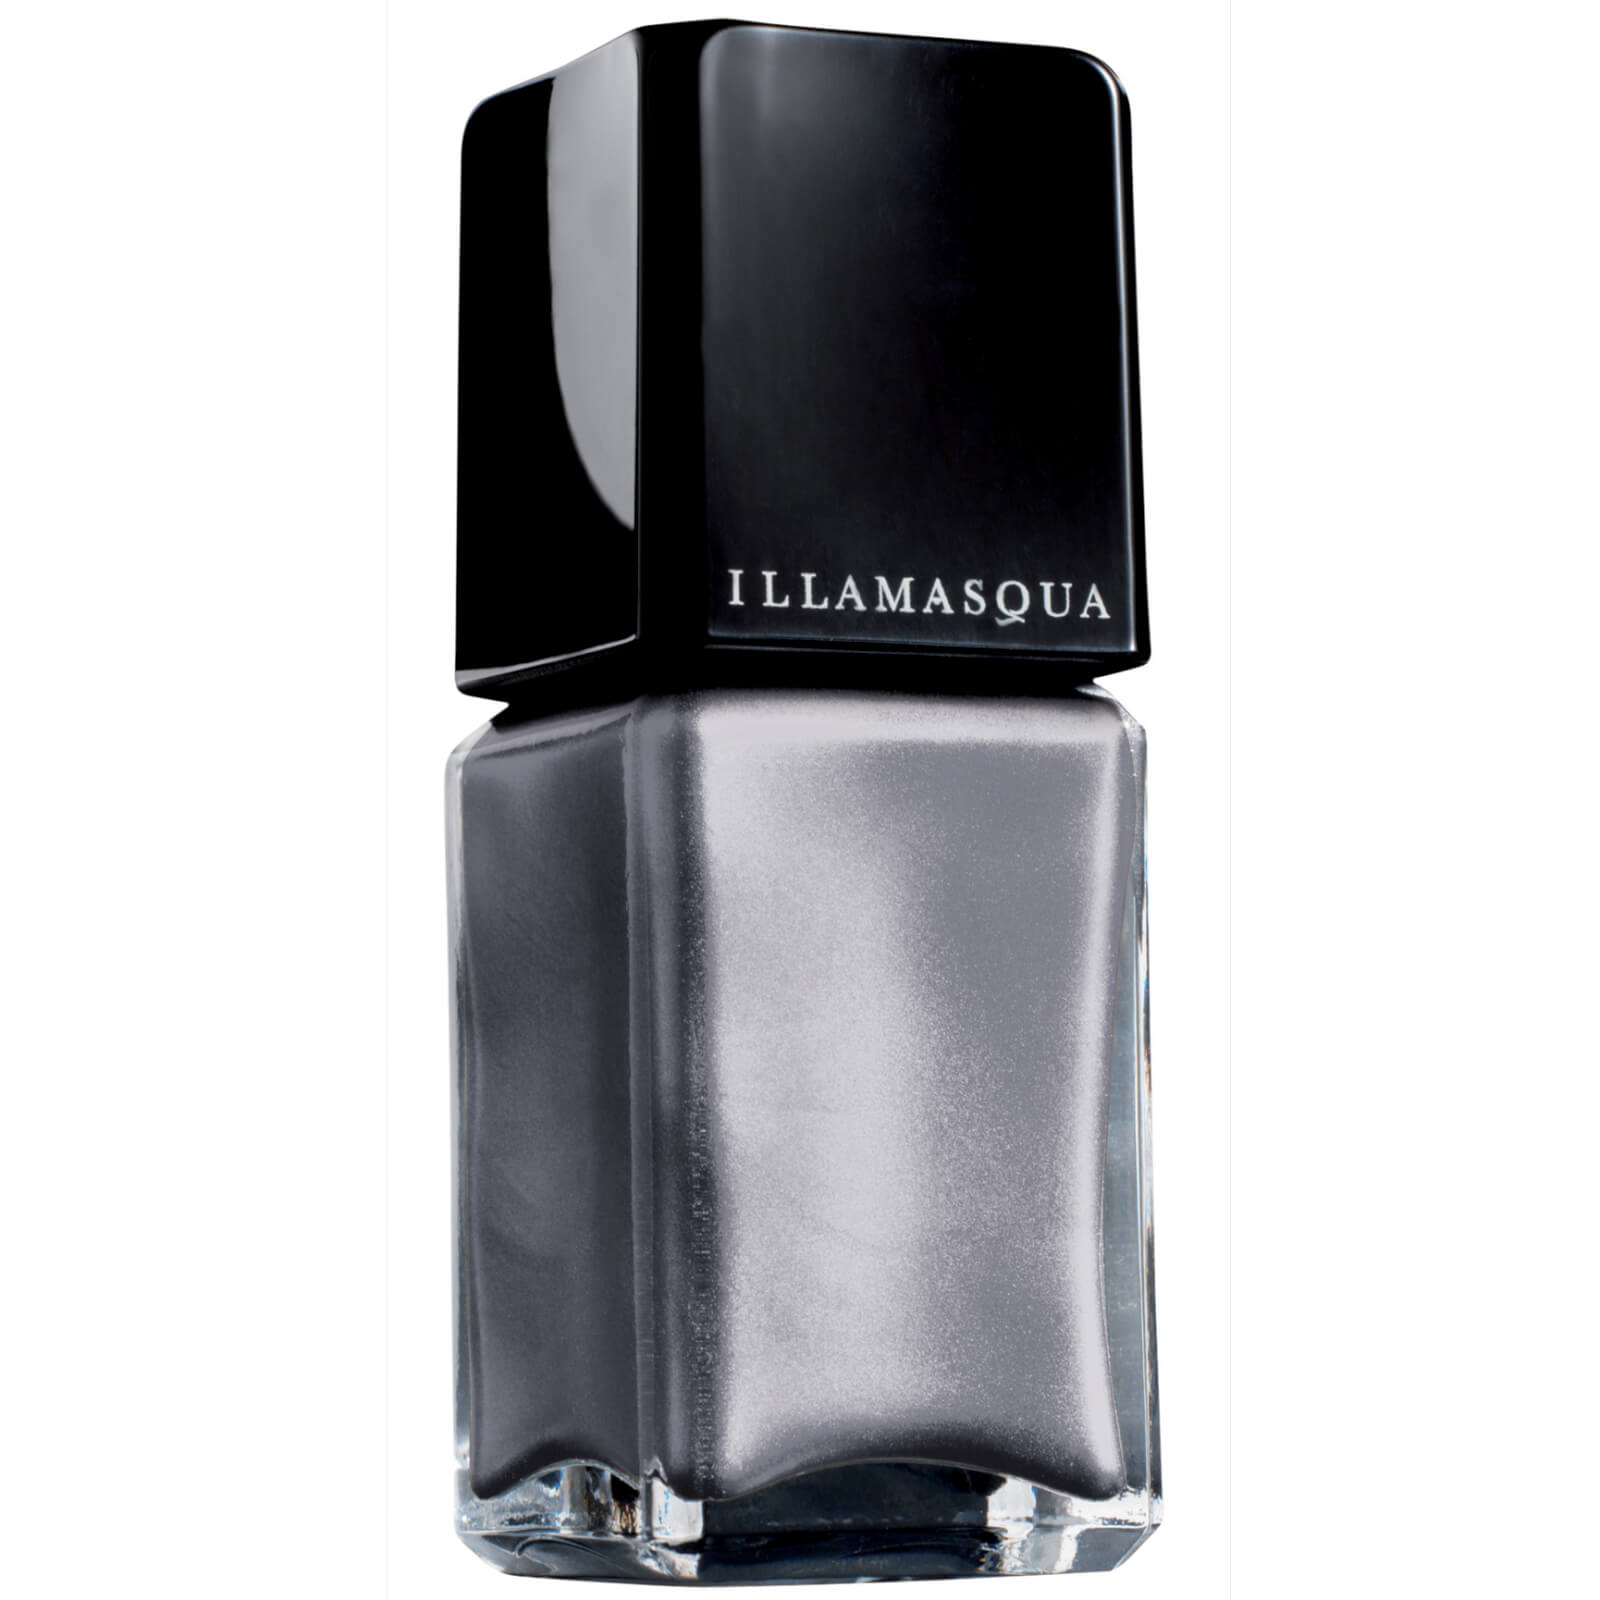 Illamasqua Nail Varnish - Grey